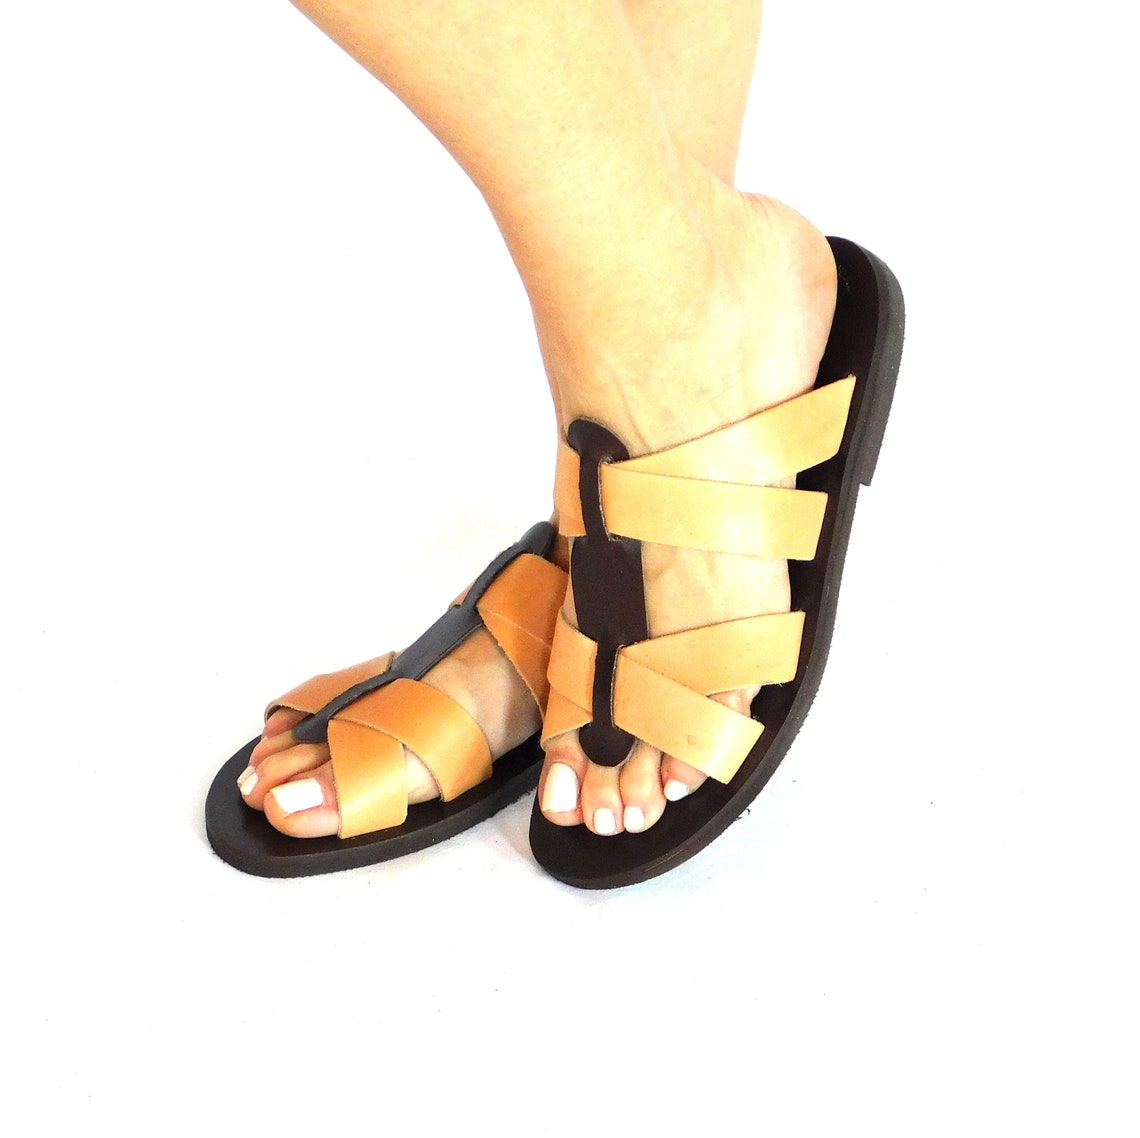 Leather sandals, ancient sandals, leather slides women, brown and natural color sandals, greek slides, handmade sandals, beach flat sandals